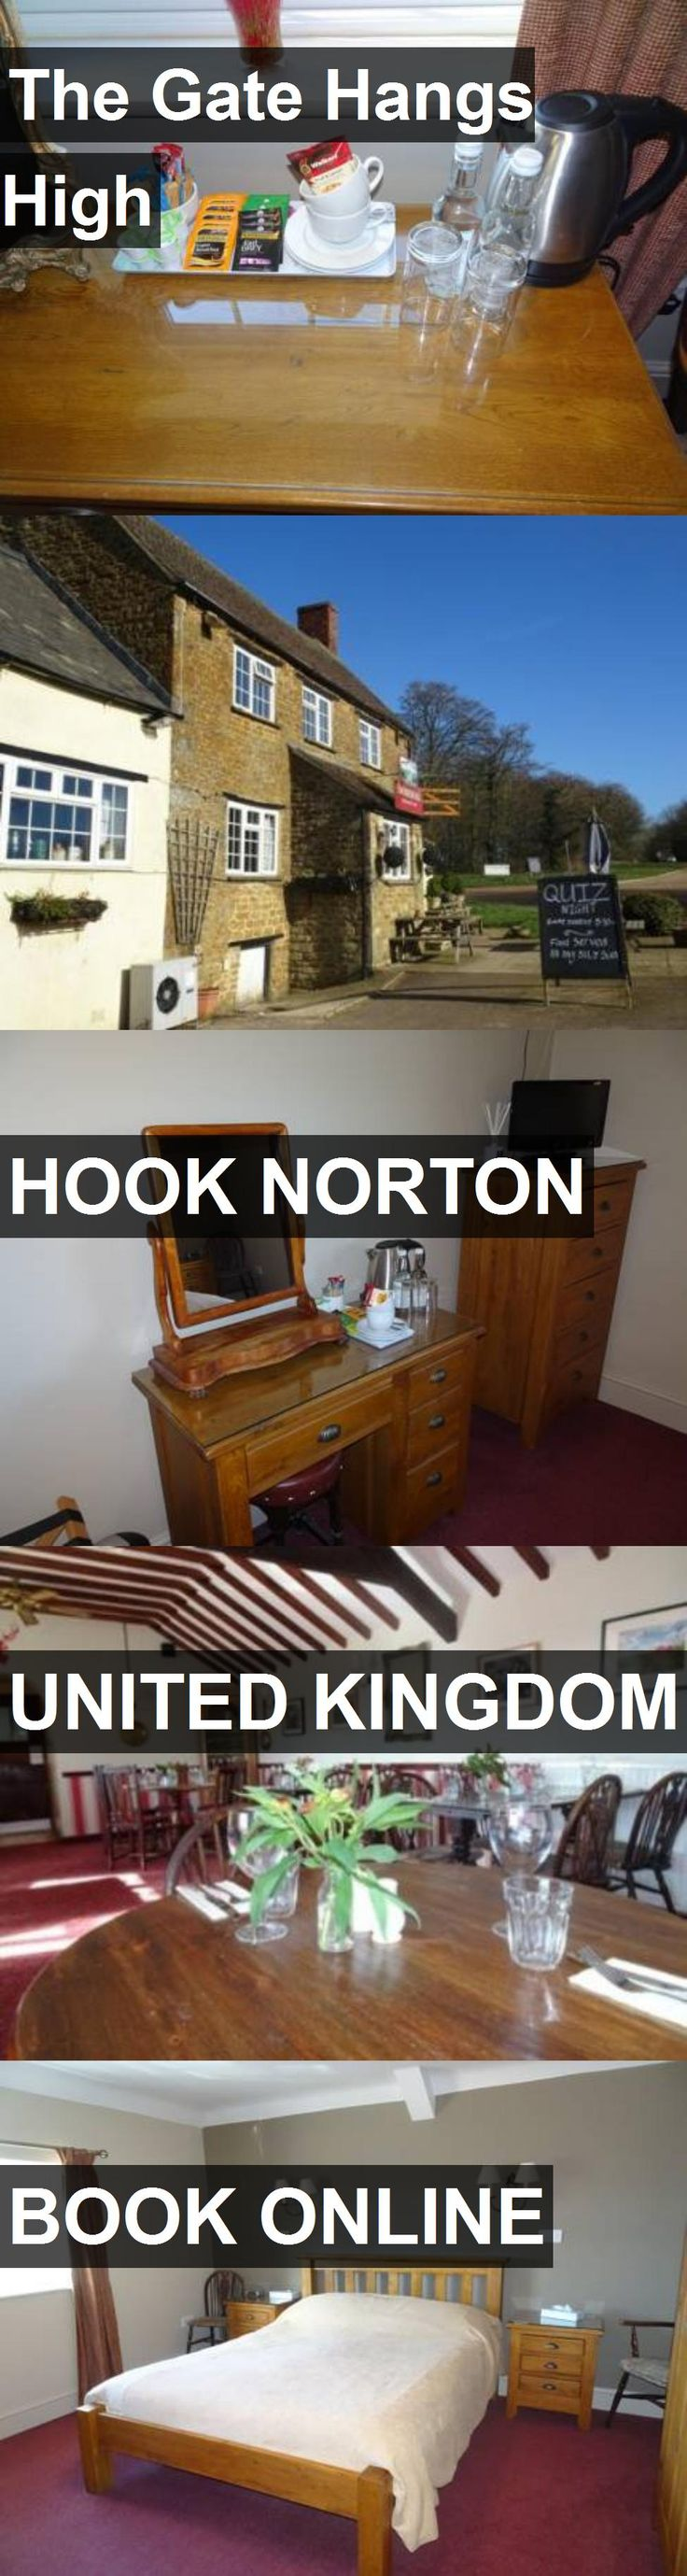 Hotel The Gate Hangs High in Hook Norton, United Kingdom. For more information, photos, reviews and best prices please follow the link. #UnitedKingdom #HookNorton #travel #vacation #hotel